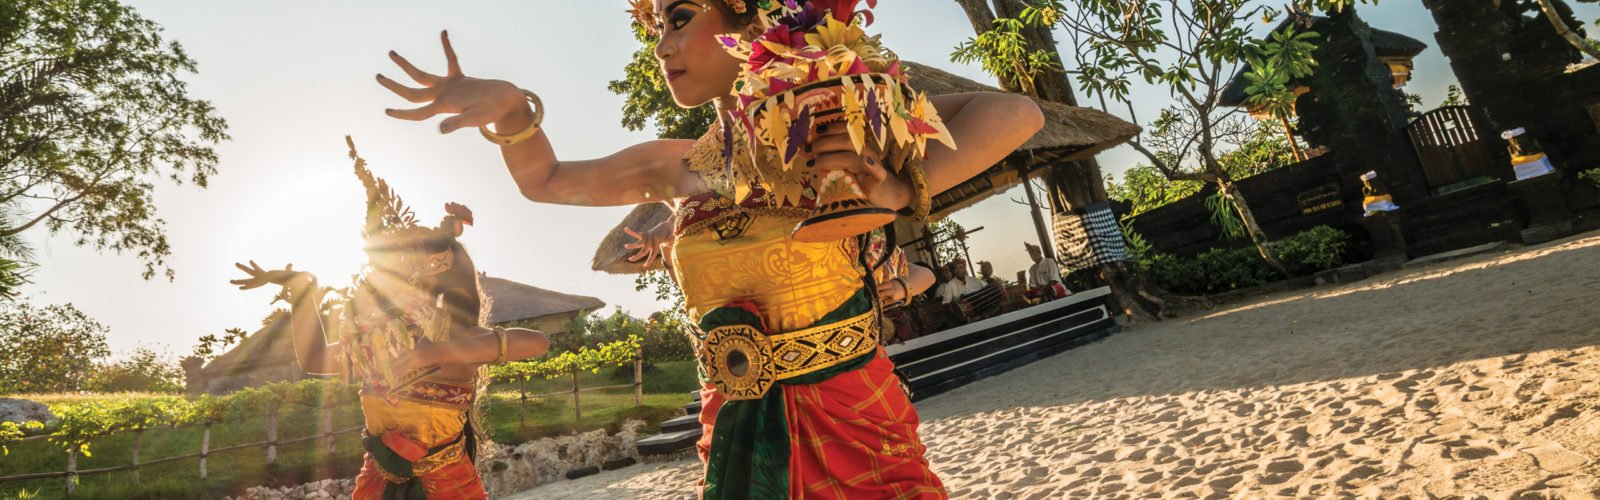 four-seasons-jimbaran-balinese-dancers